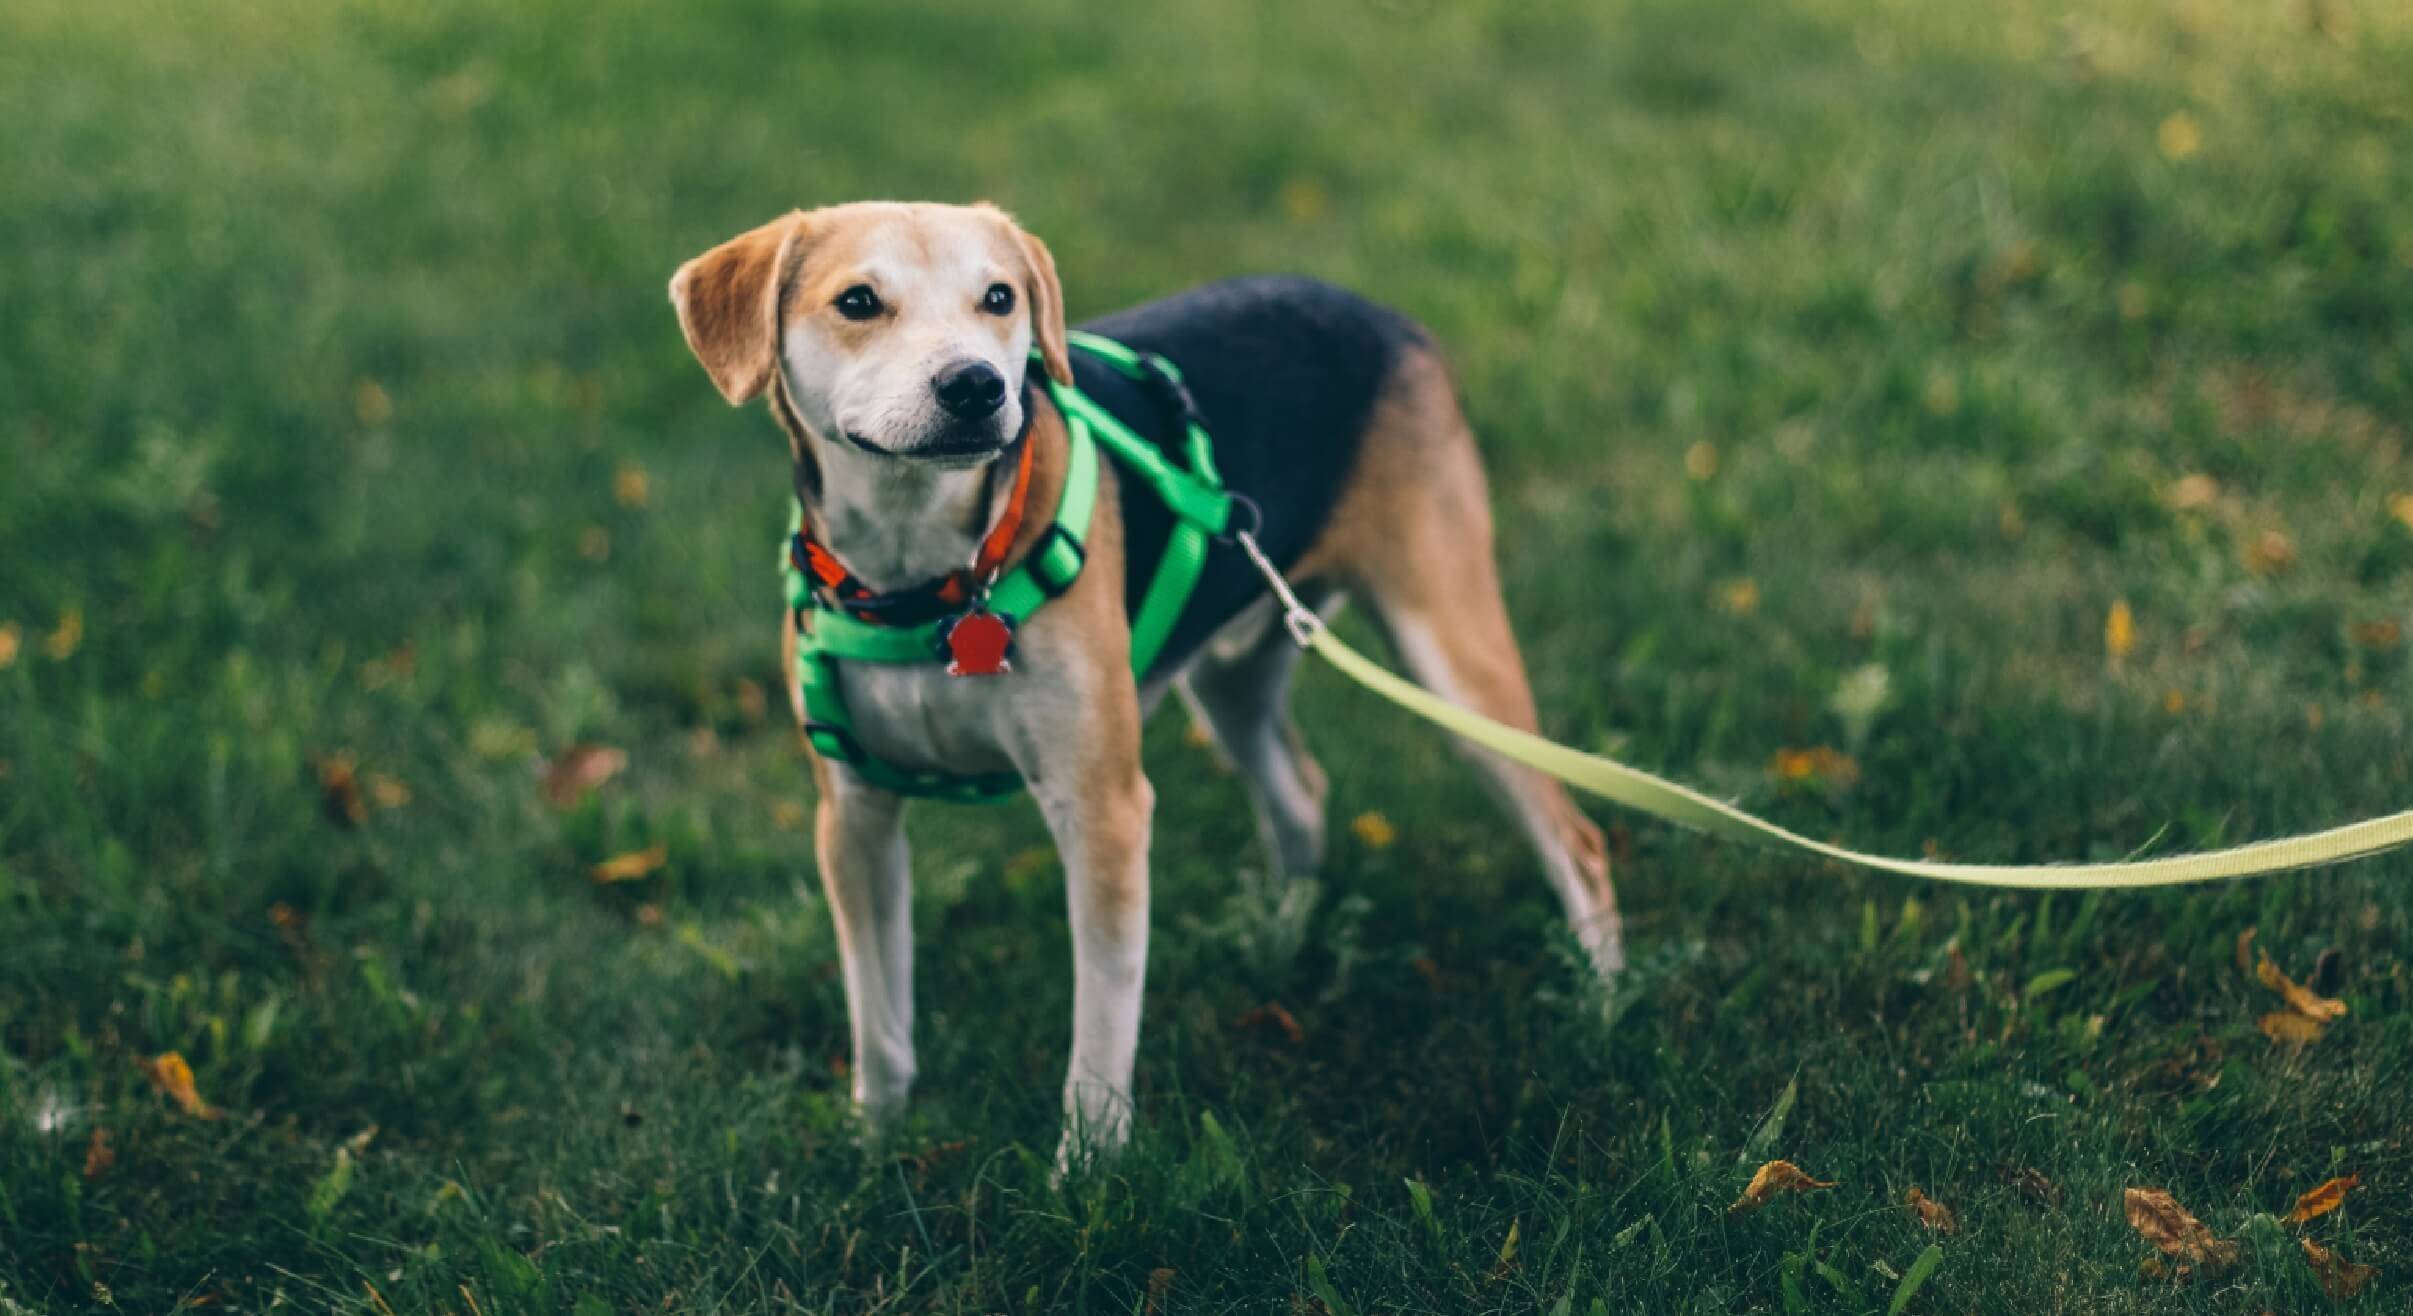 Why Dogs Wipe Their Paws After Going To The Bathroom Dogs Dog Walker Dog Activities